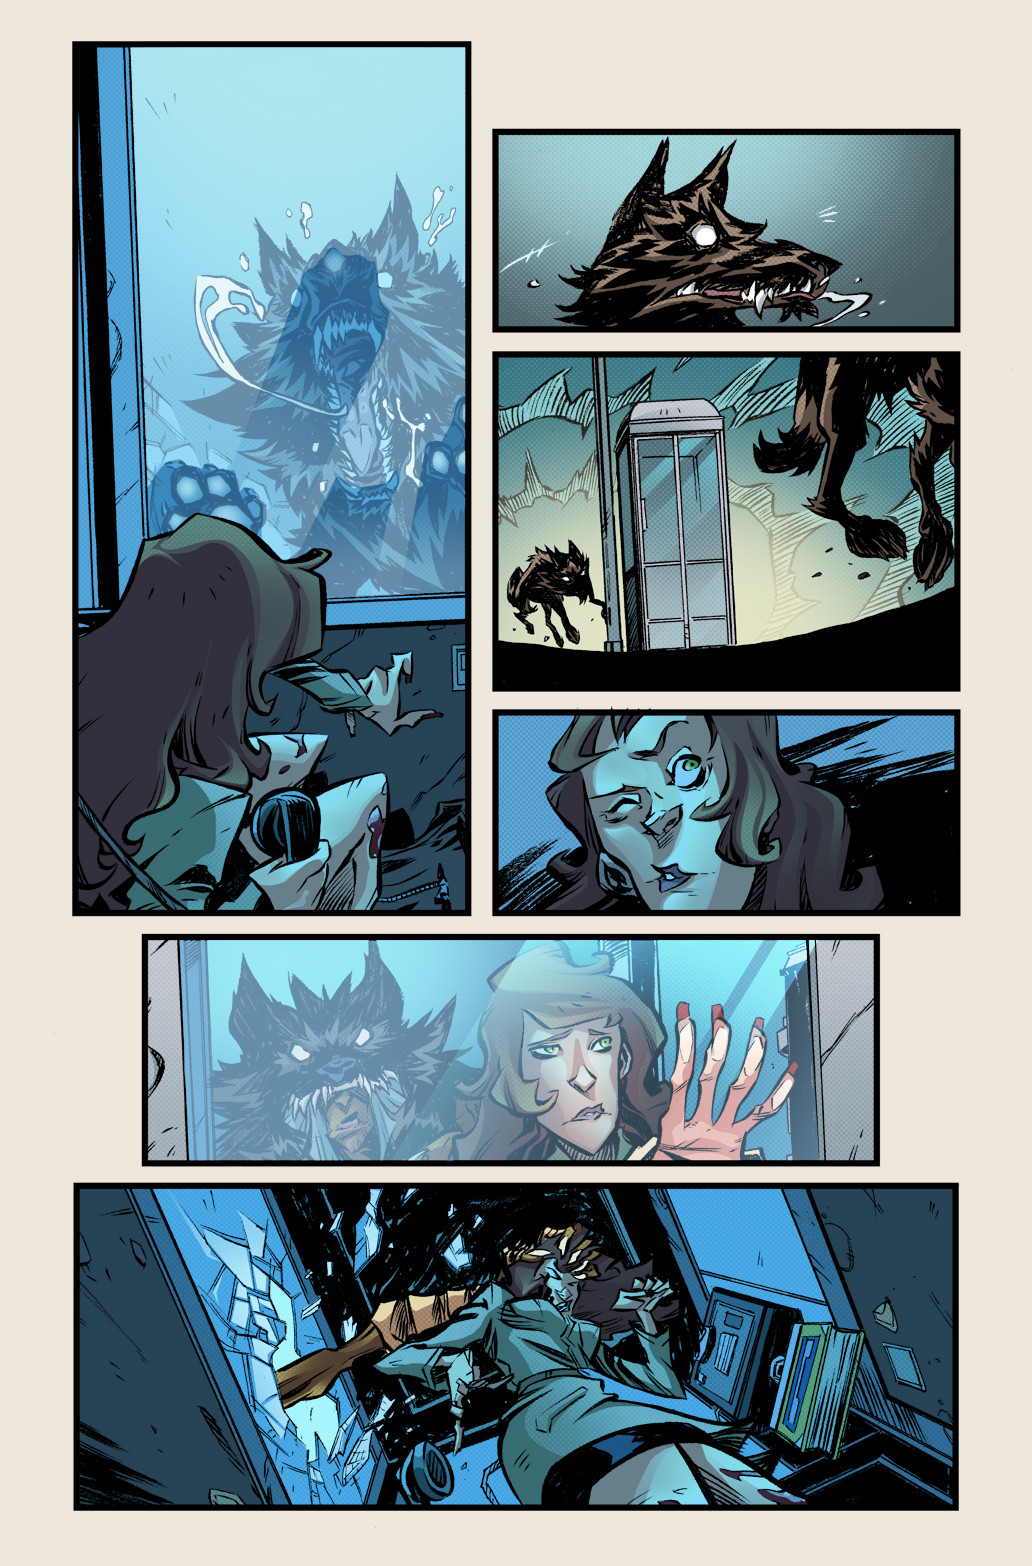 GONERS - #4, page 14